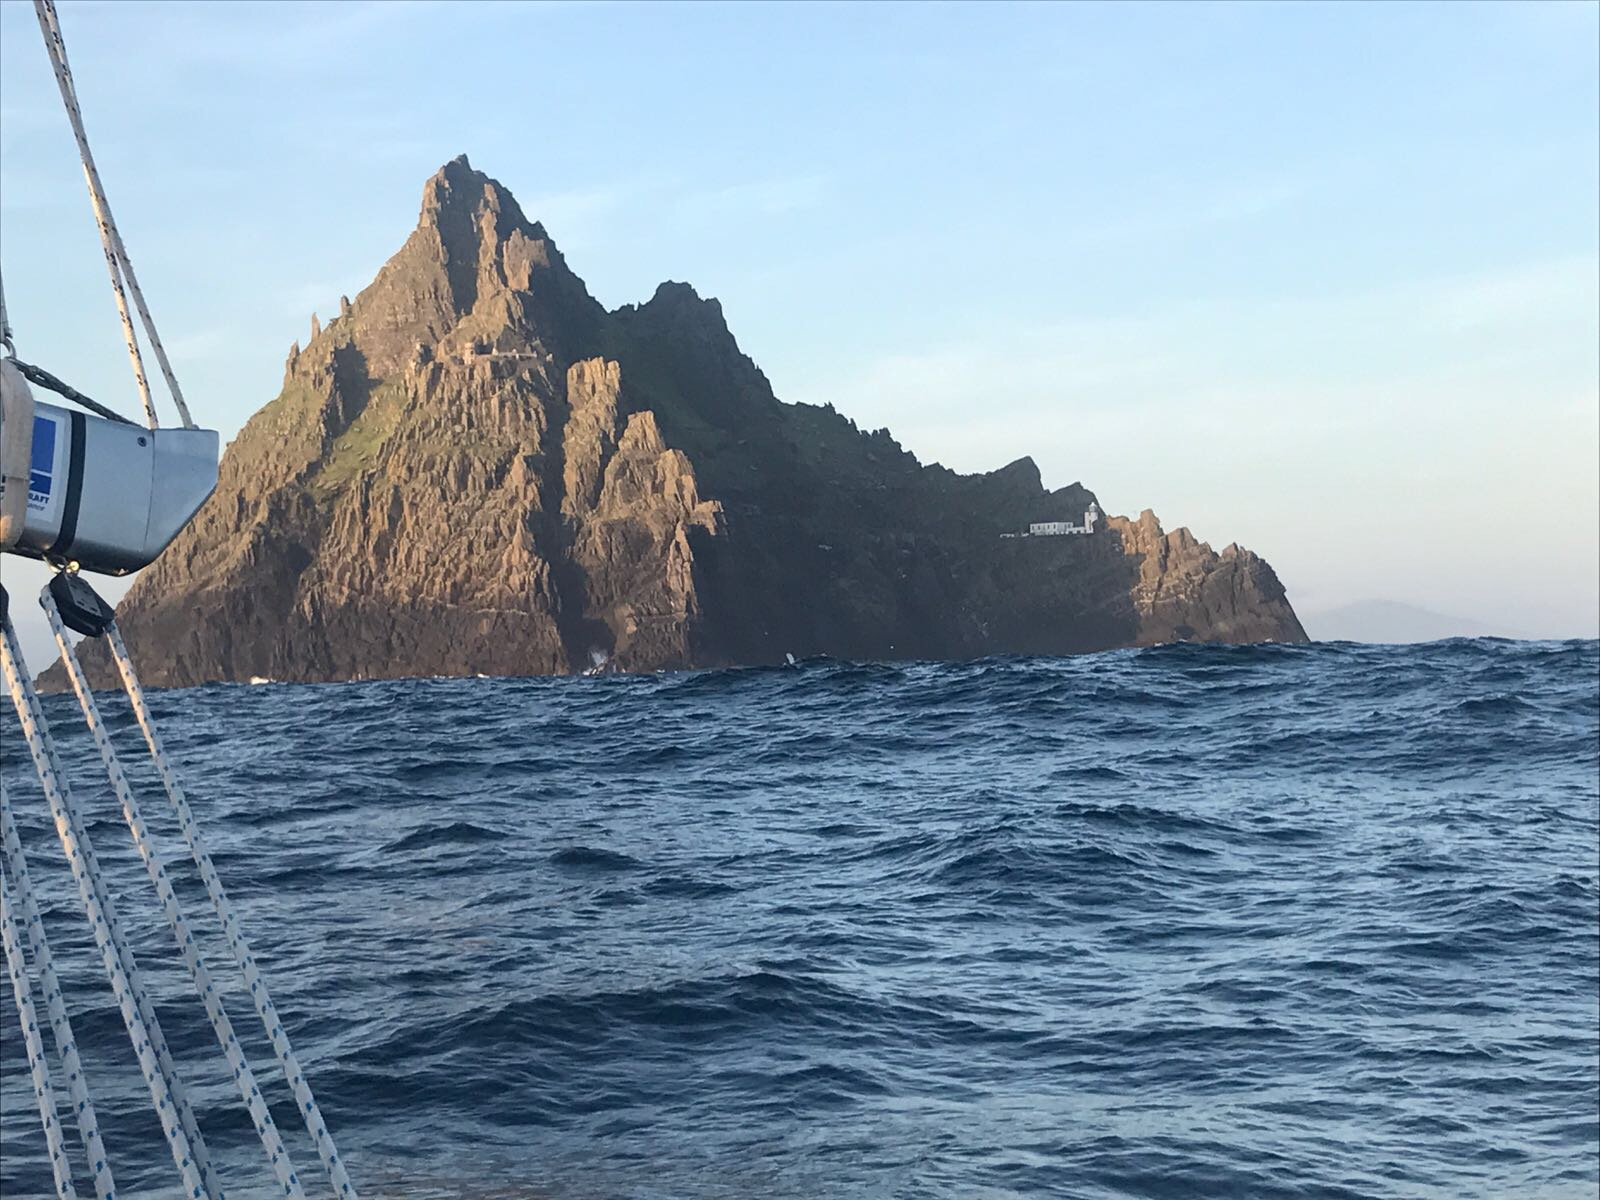 Sun setting at Skellig Michael